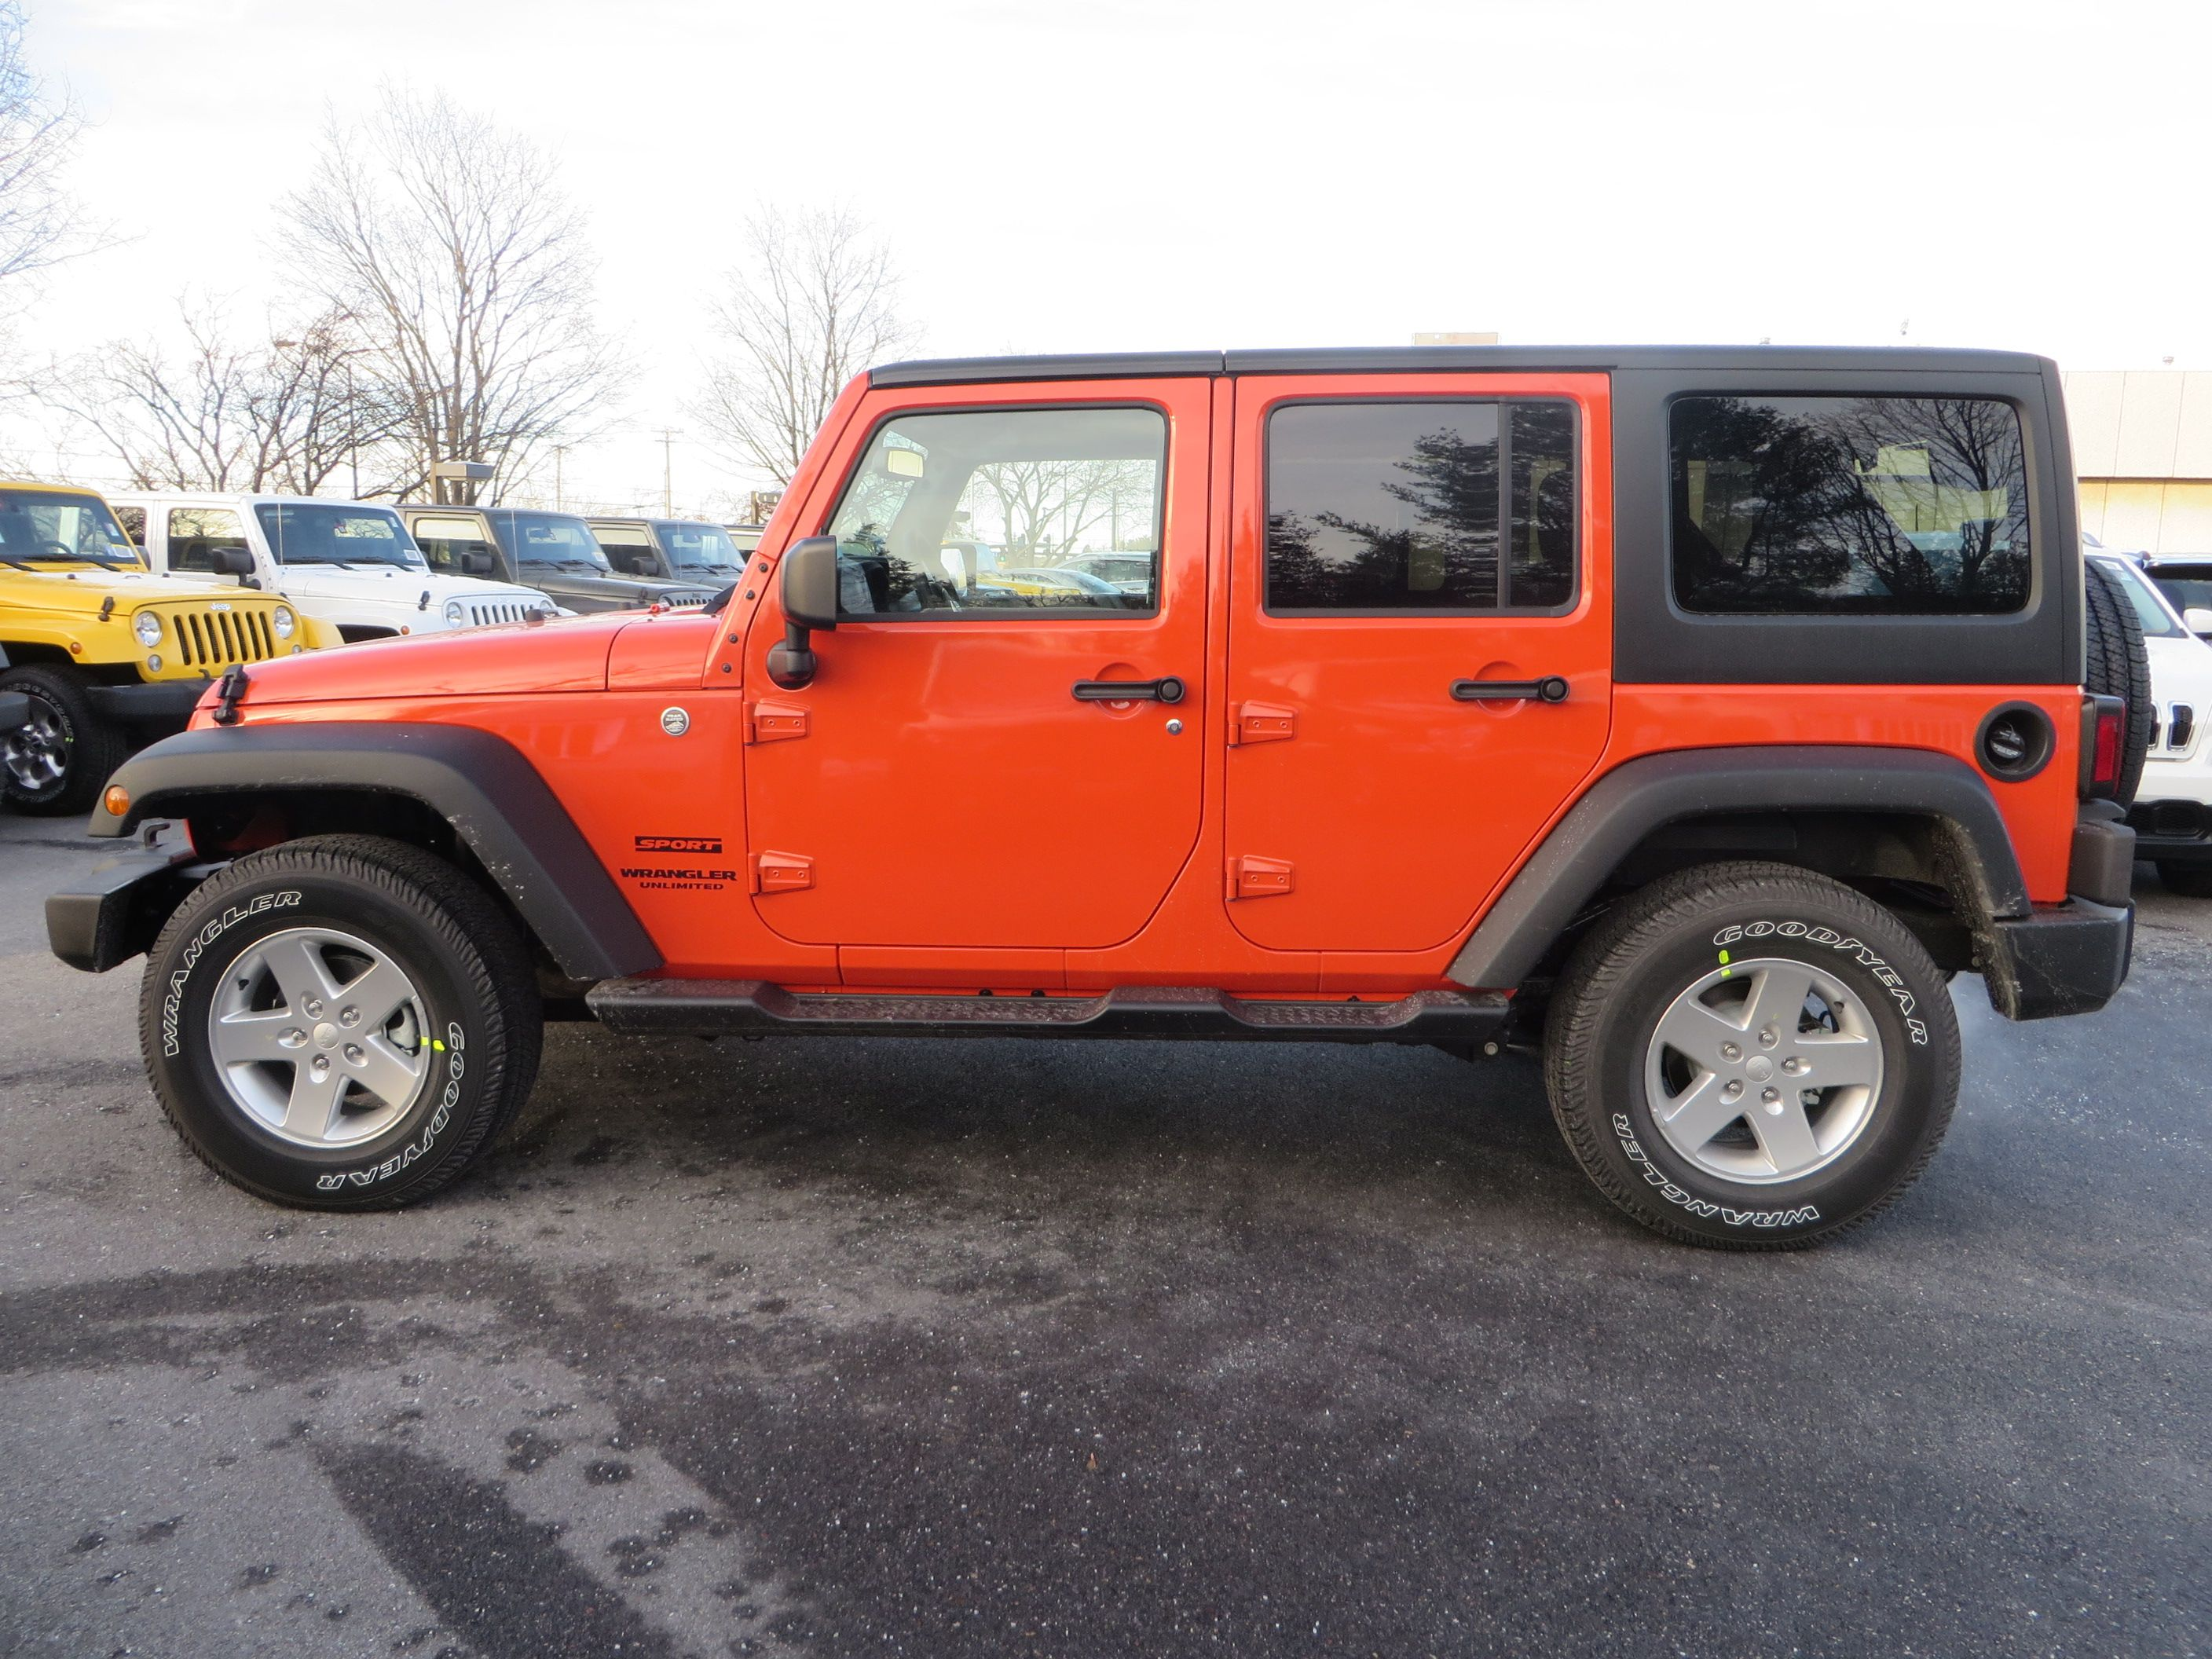 2015 Jeep Wrangler Unlimited In Sunset Orange 2015 Jeep Wrangler